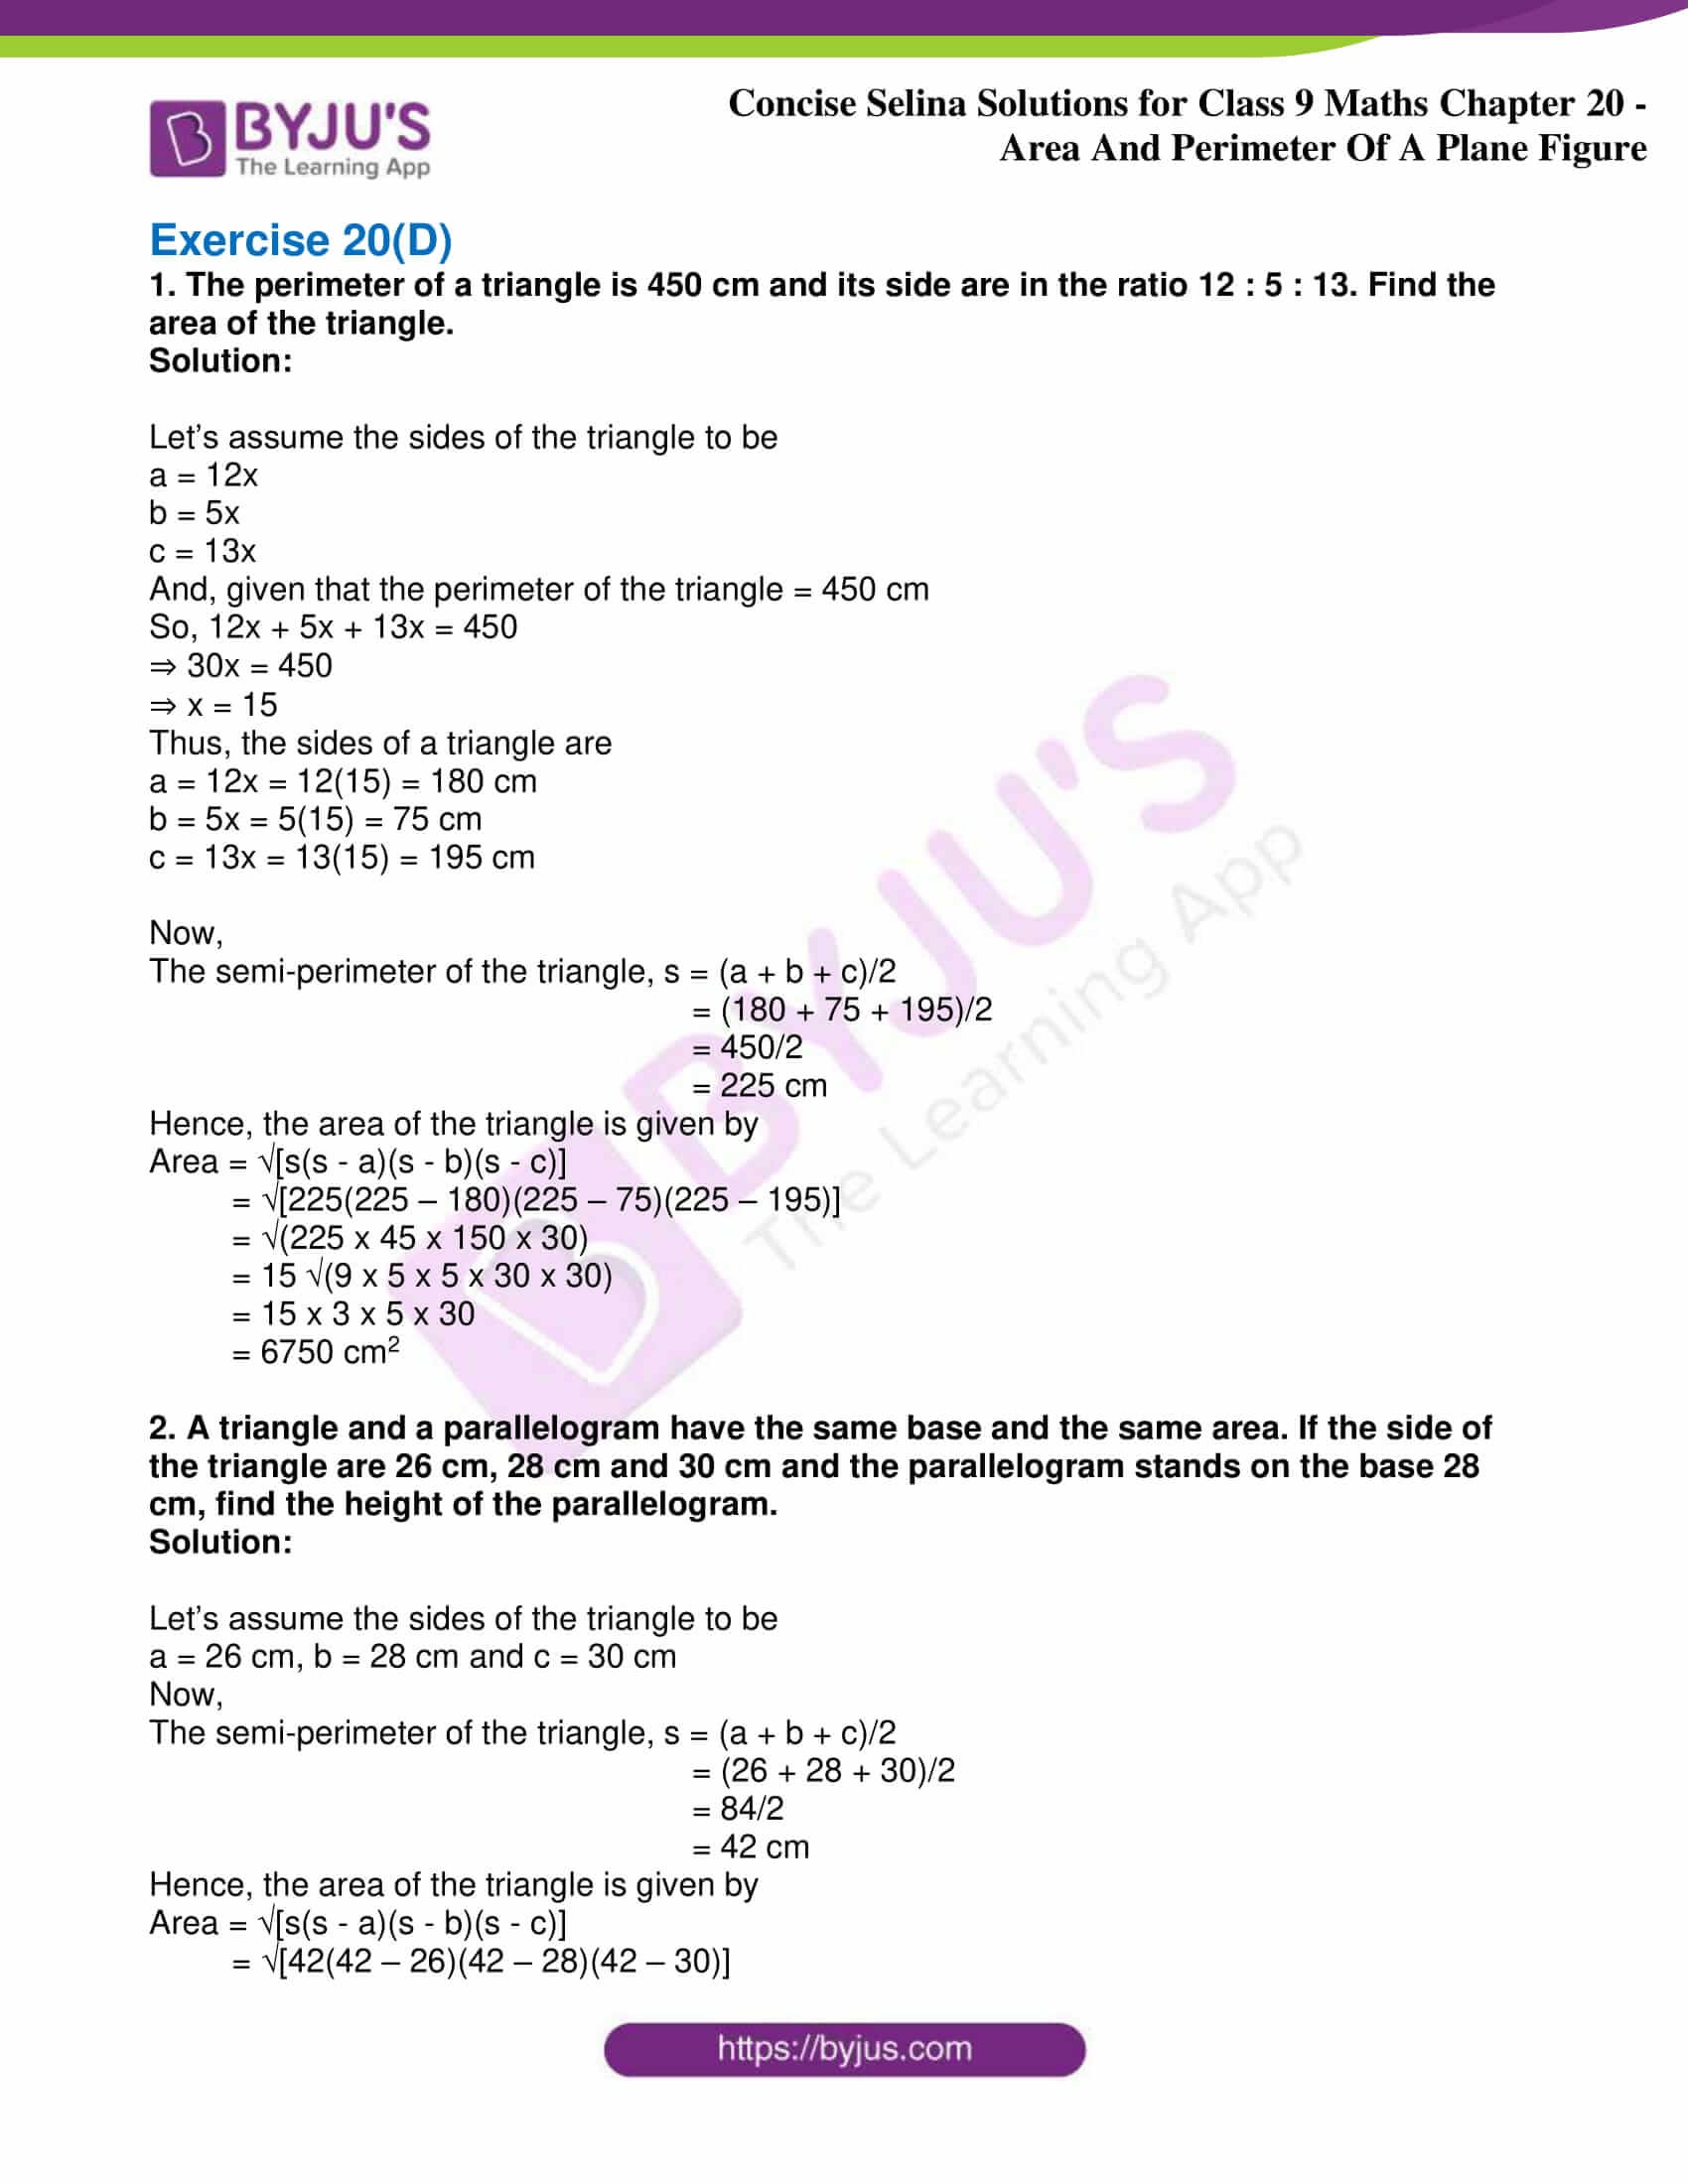 icse class 9 jun9 maths selina solutions chapter 20 area and perimeter of a plane figure 11